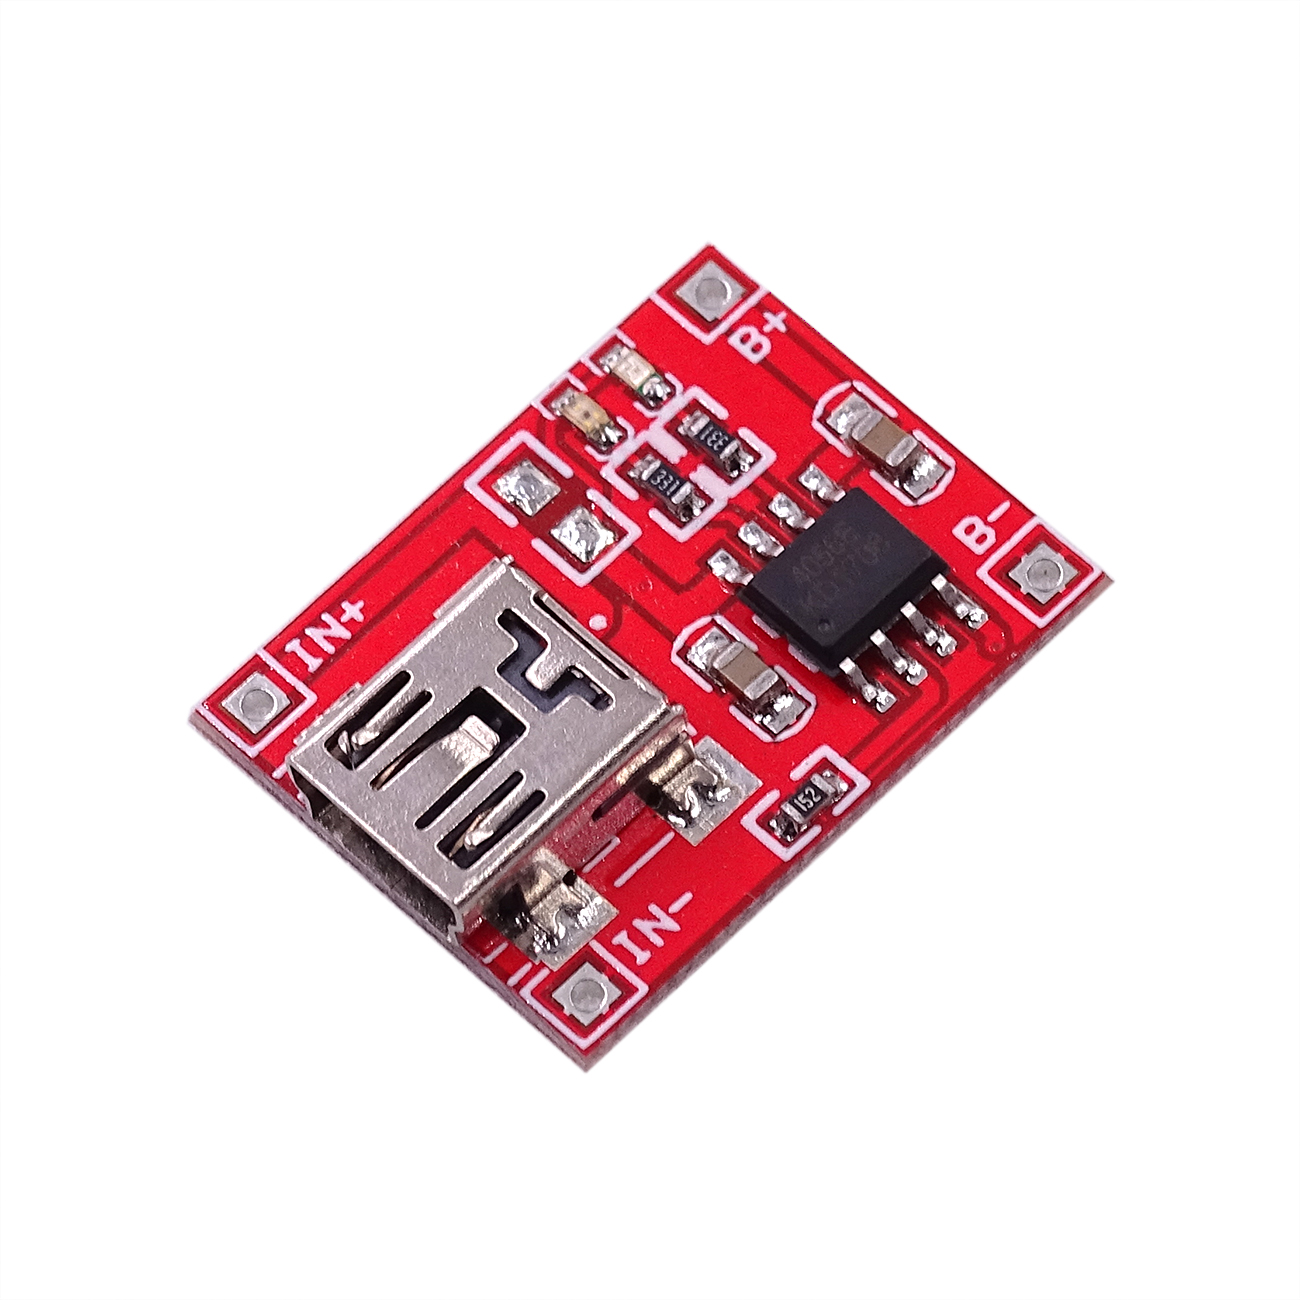 10pcs TP4056 780MA-1A Lipo Battery Charging Board Charger Module lithium battery DIY Mini USB Port